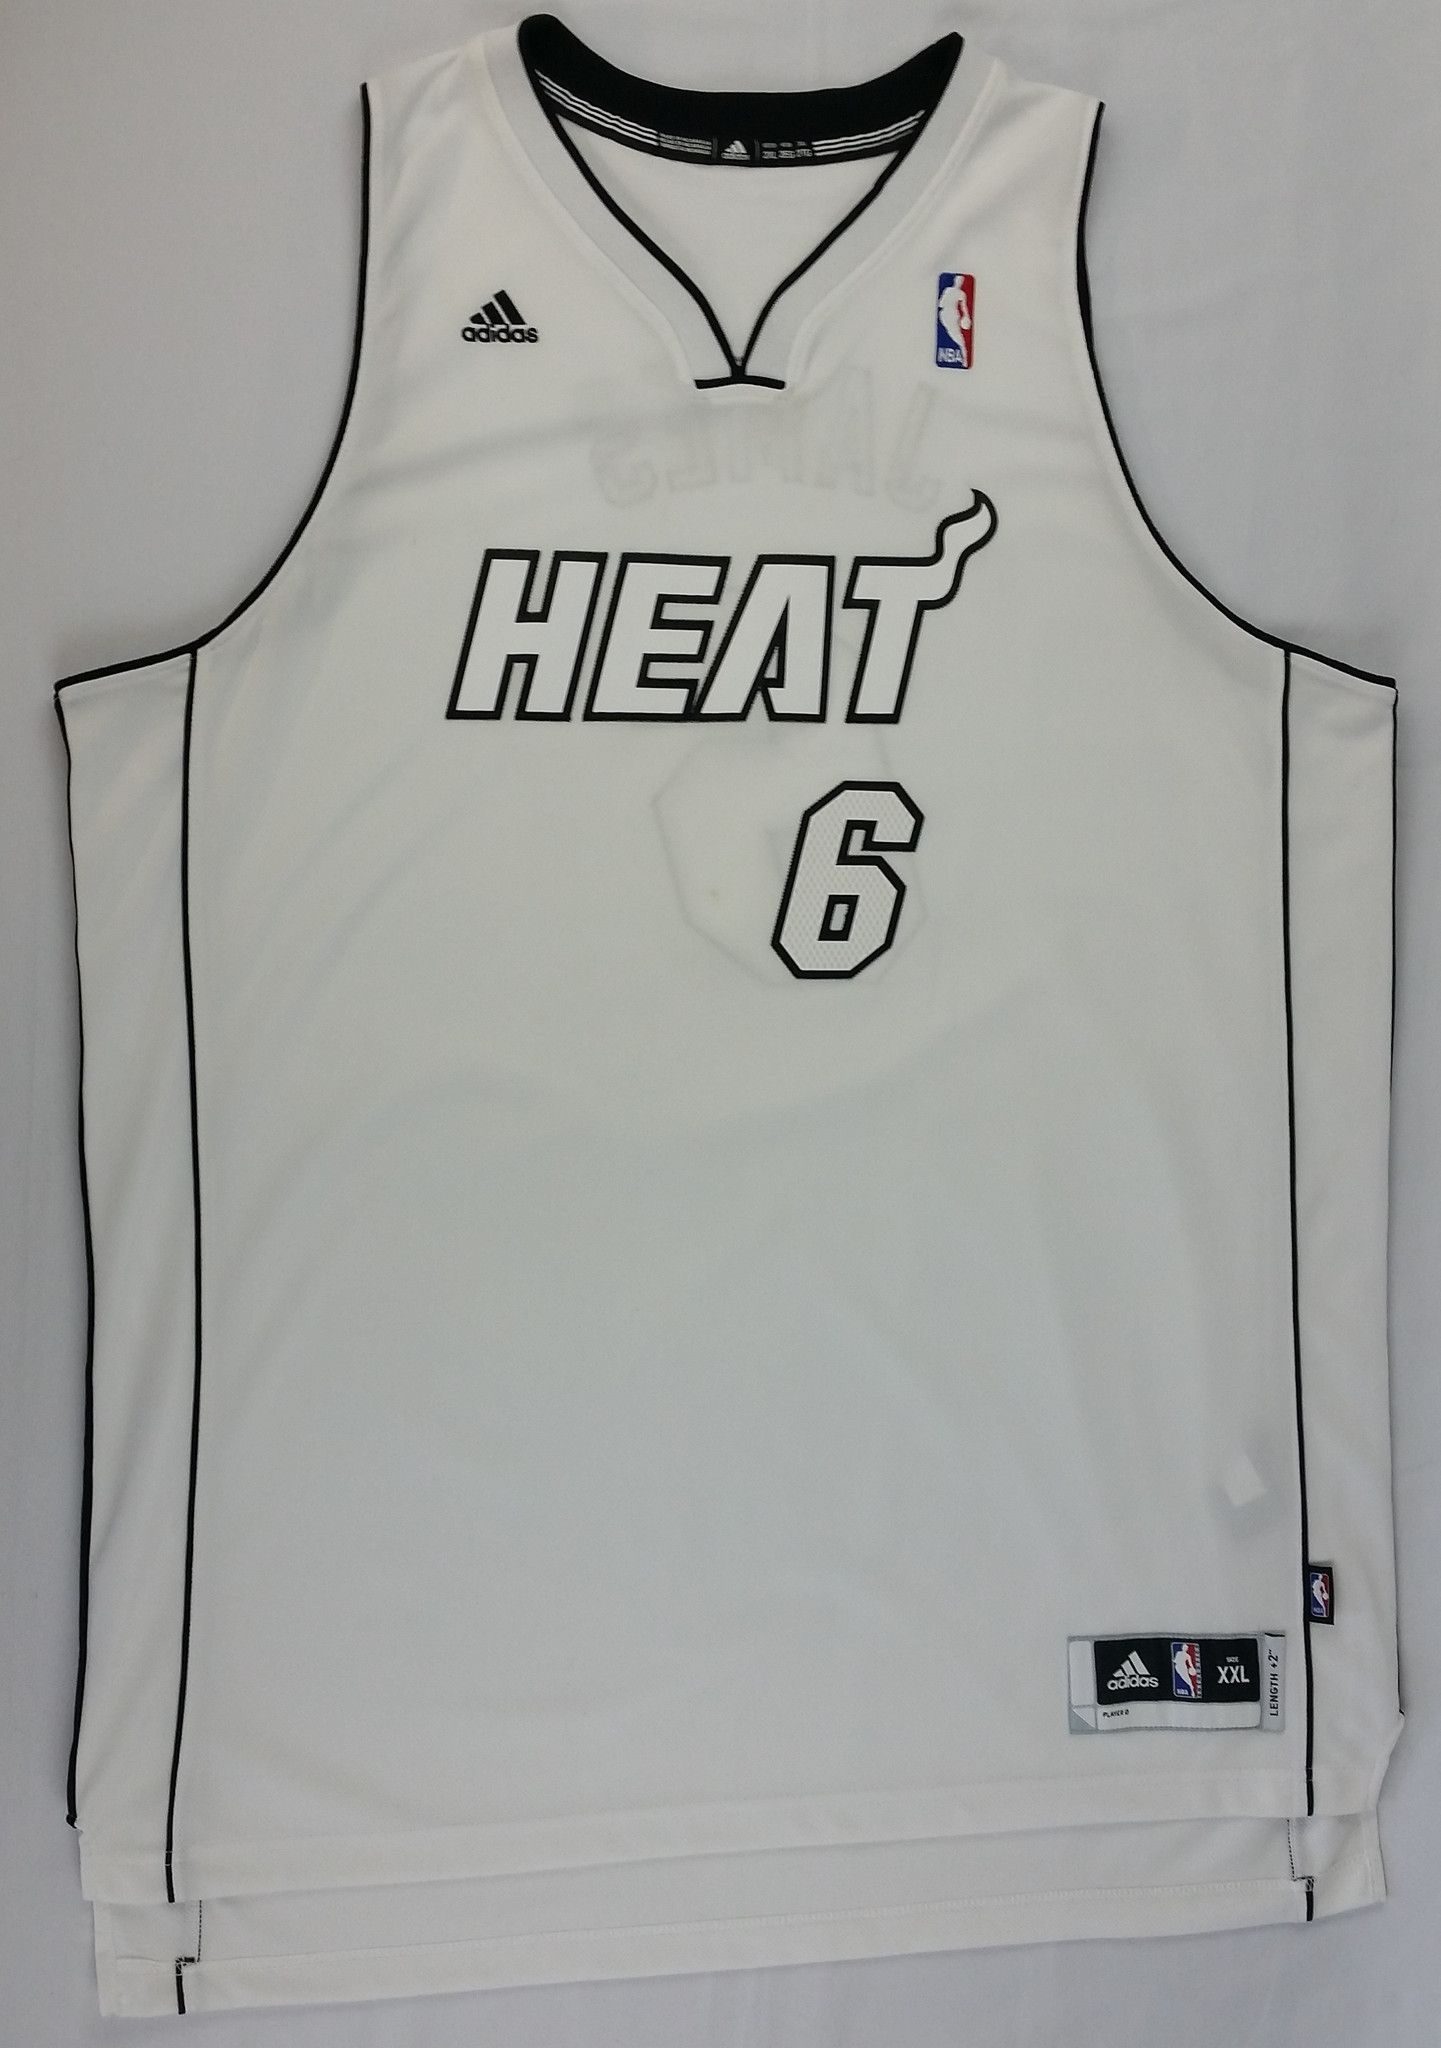 outlet store 2a4ff d823b Lebron James #6 Miami Heat Jersey Adidas NBA Authentic White ...